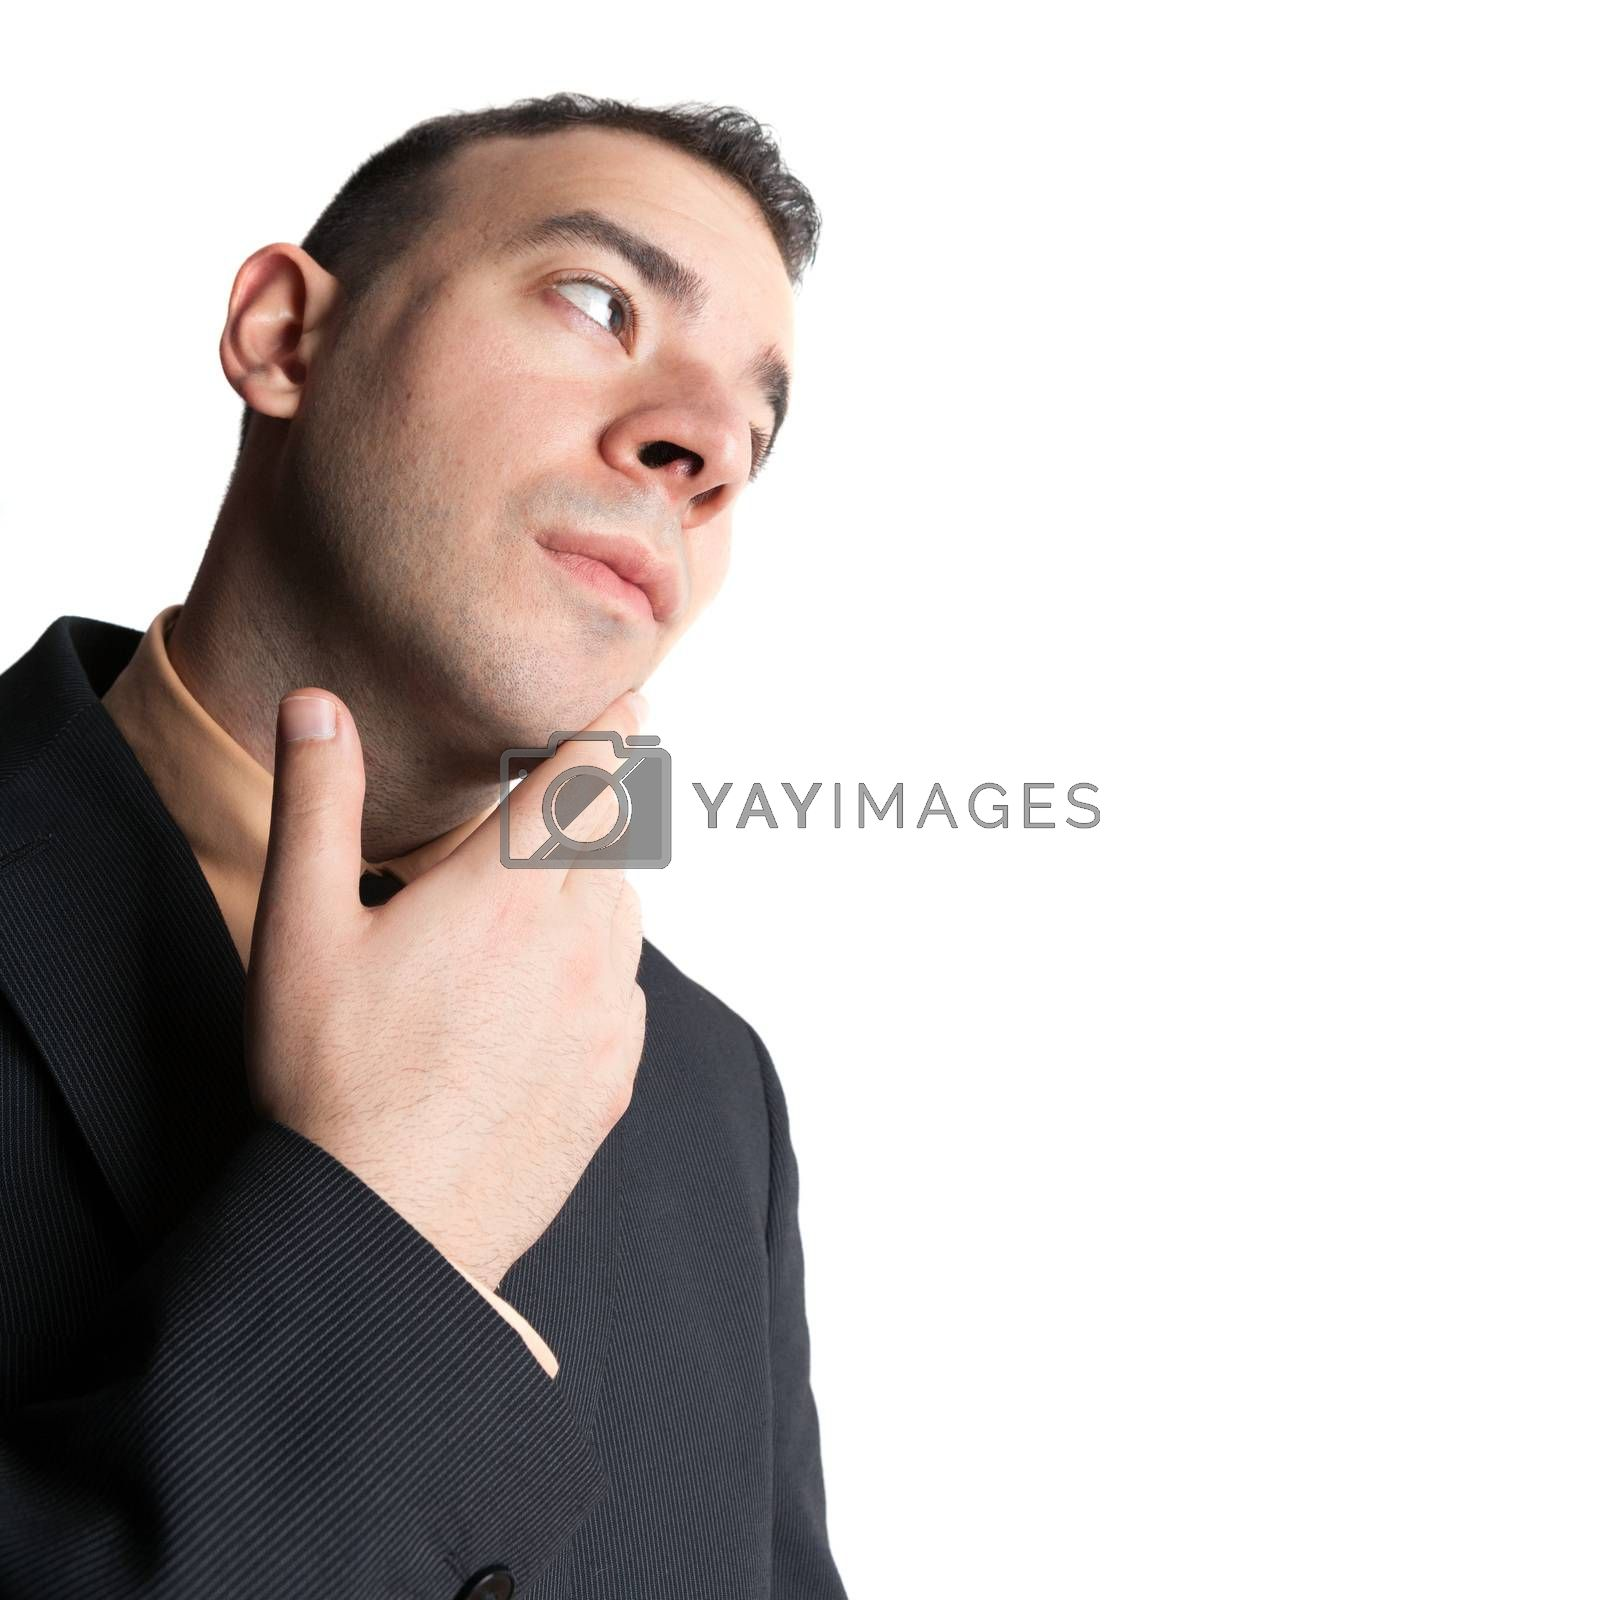 Young business man that looks worried or contemplative isolated over a white background.